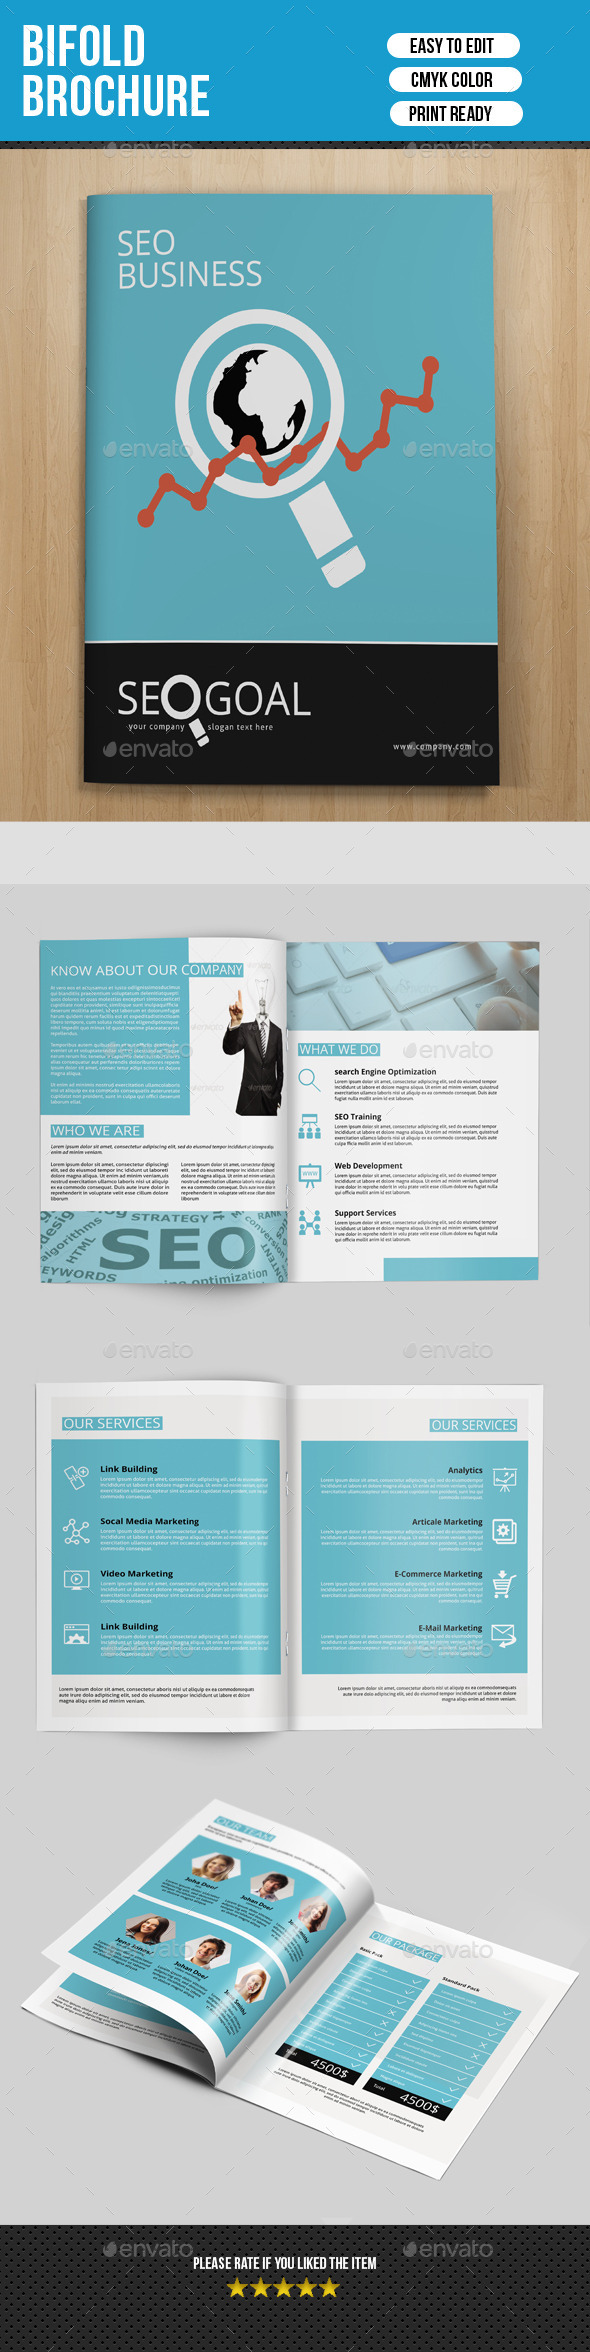 8 Pages SEO Business Brochure-V172 - Corporate Brochures